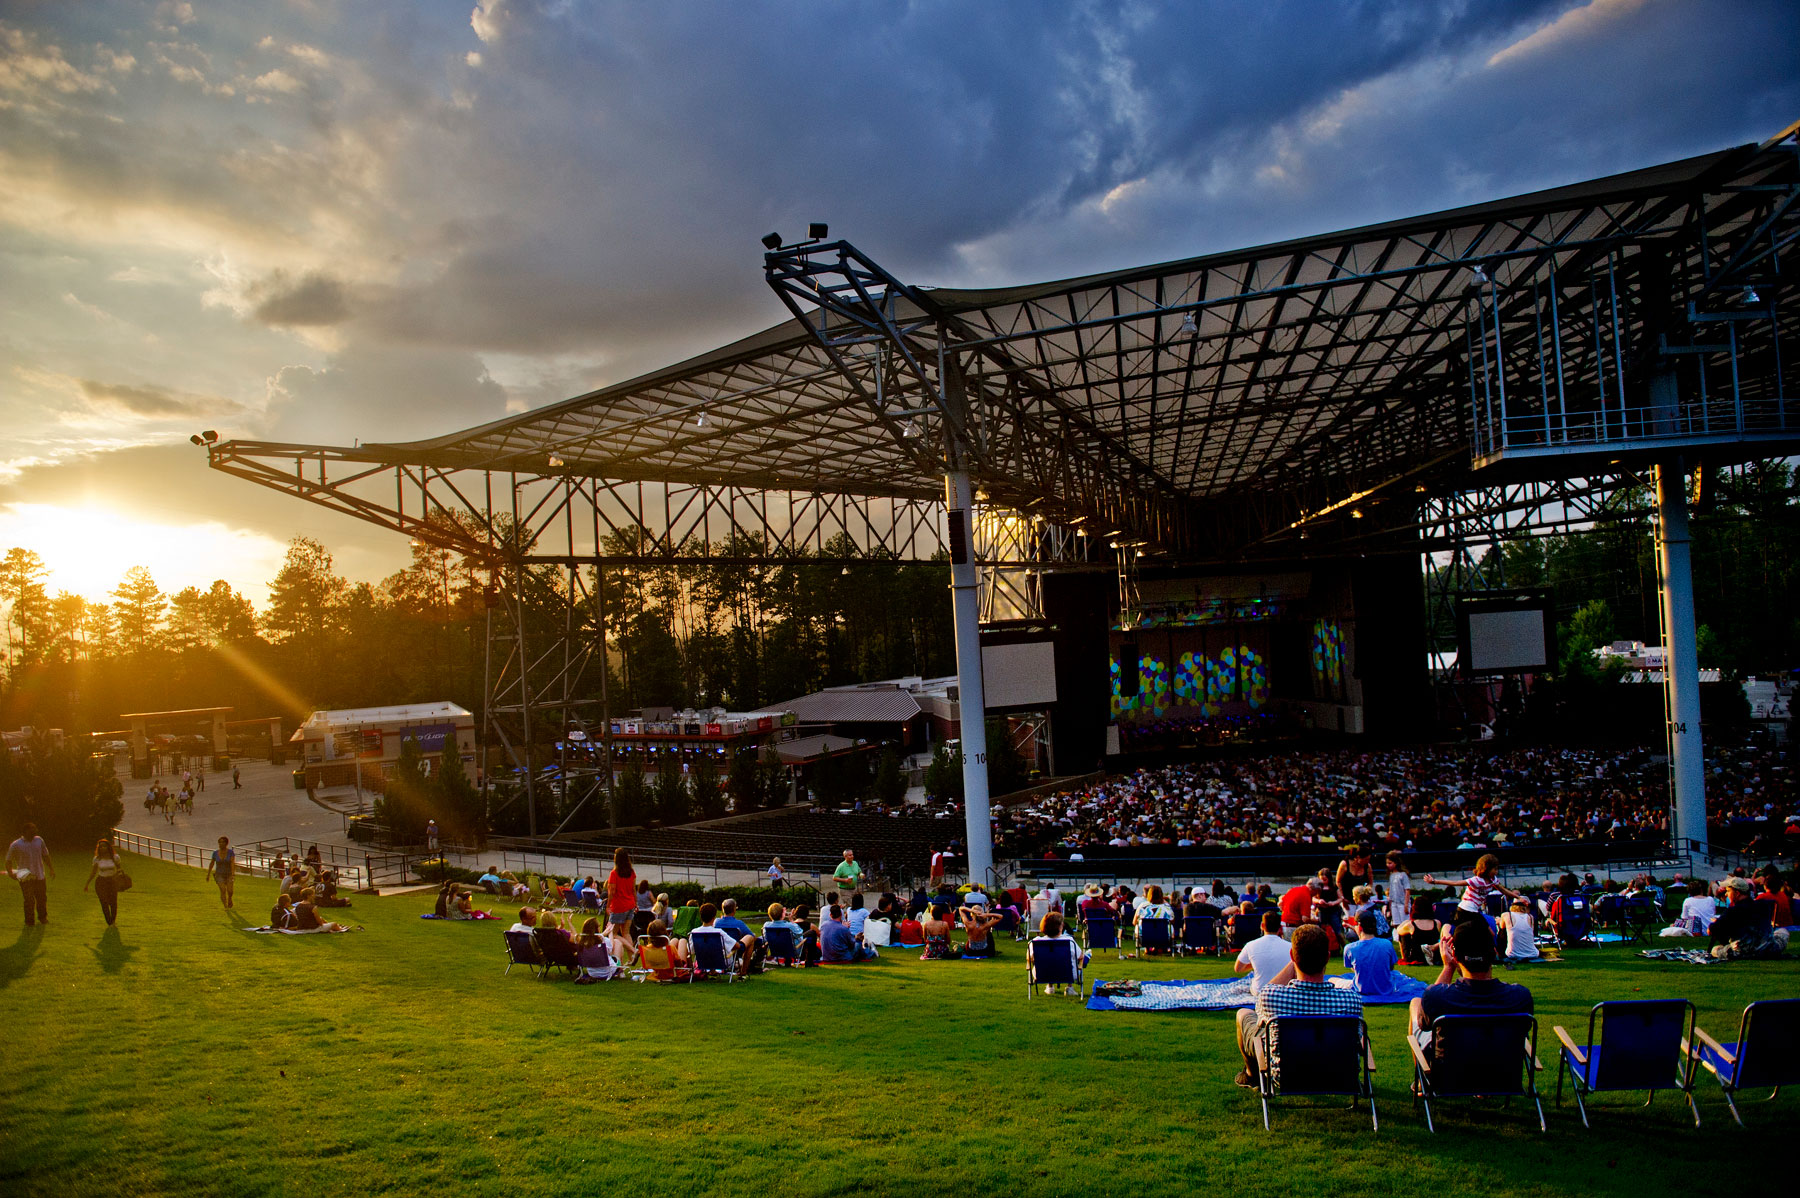 Ameris Bank Amphitheater in Alpharetta, Georgia